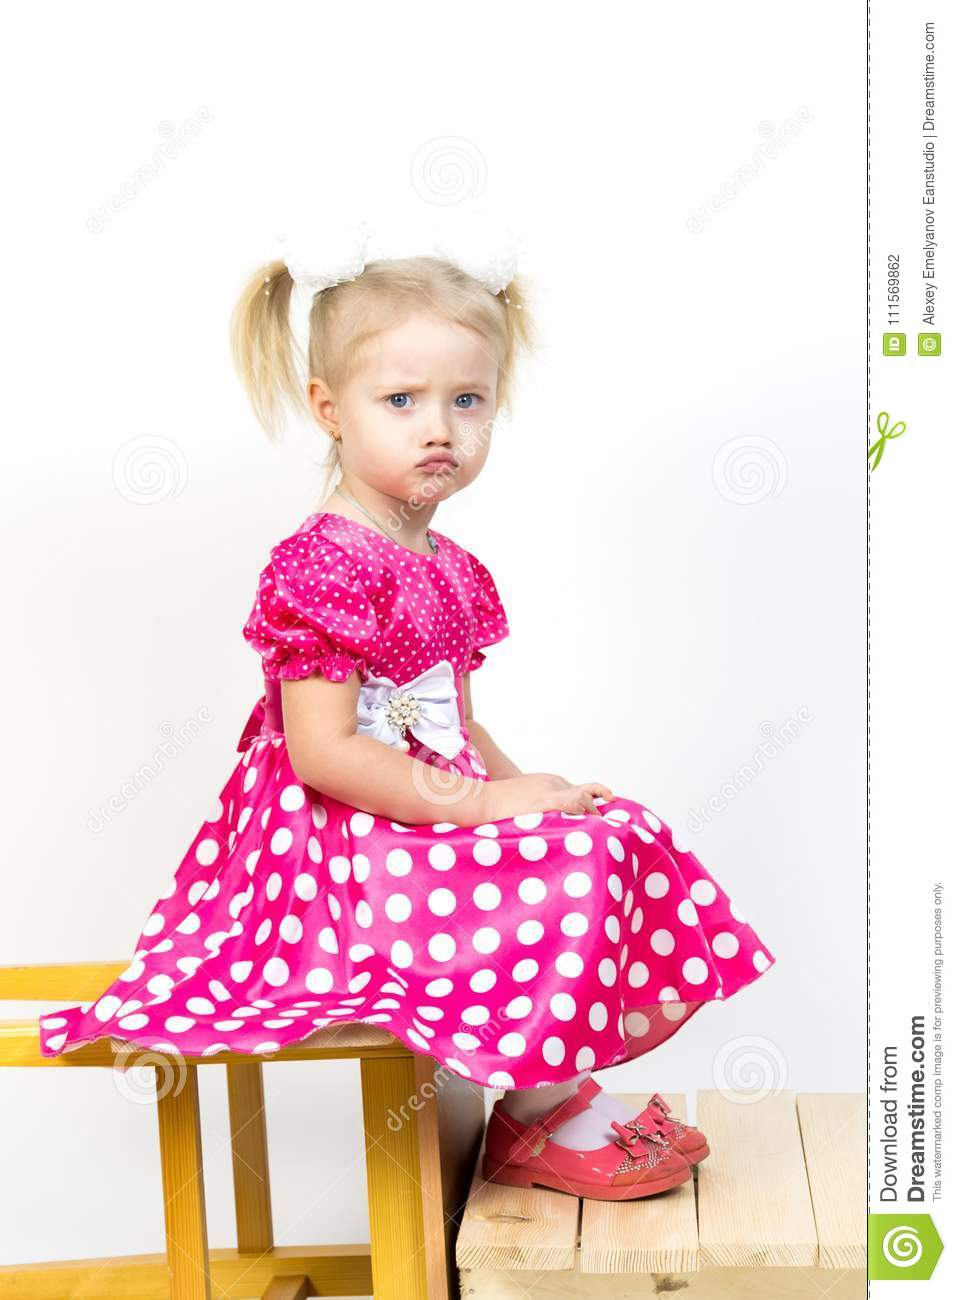 c1853474a2 Little Girl 3 Years Old In A Red Dress With Bows In Her Hair. Stock ...